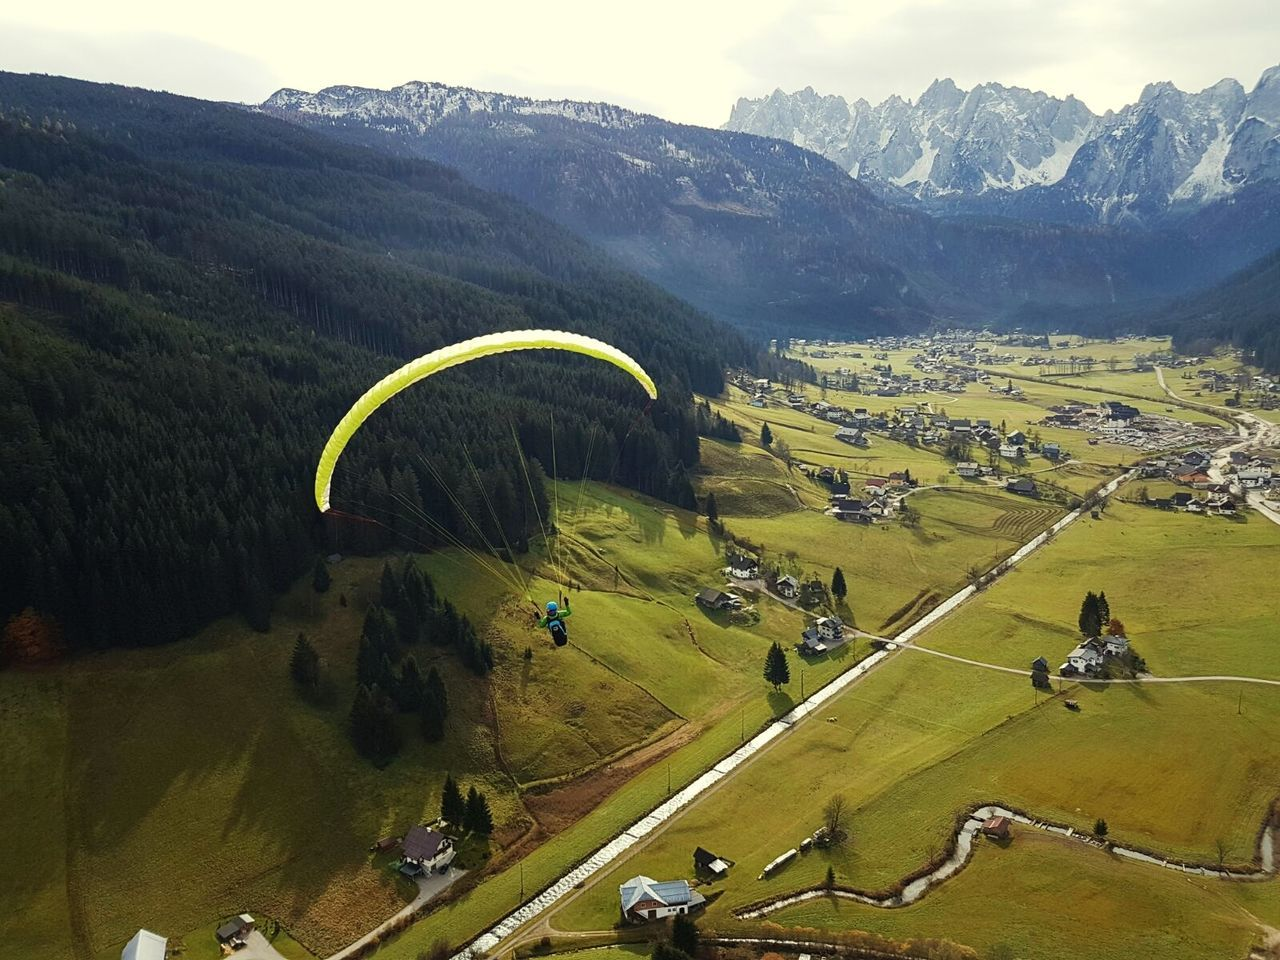 View From Above Inflightpictures Austria SalzburgerLand Gosaukamm Paragliding Mountains Colours Of Nature Snowy Mountains